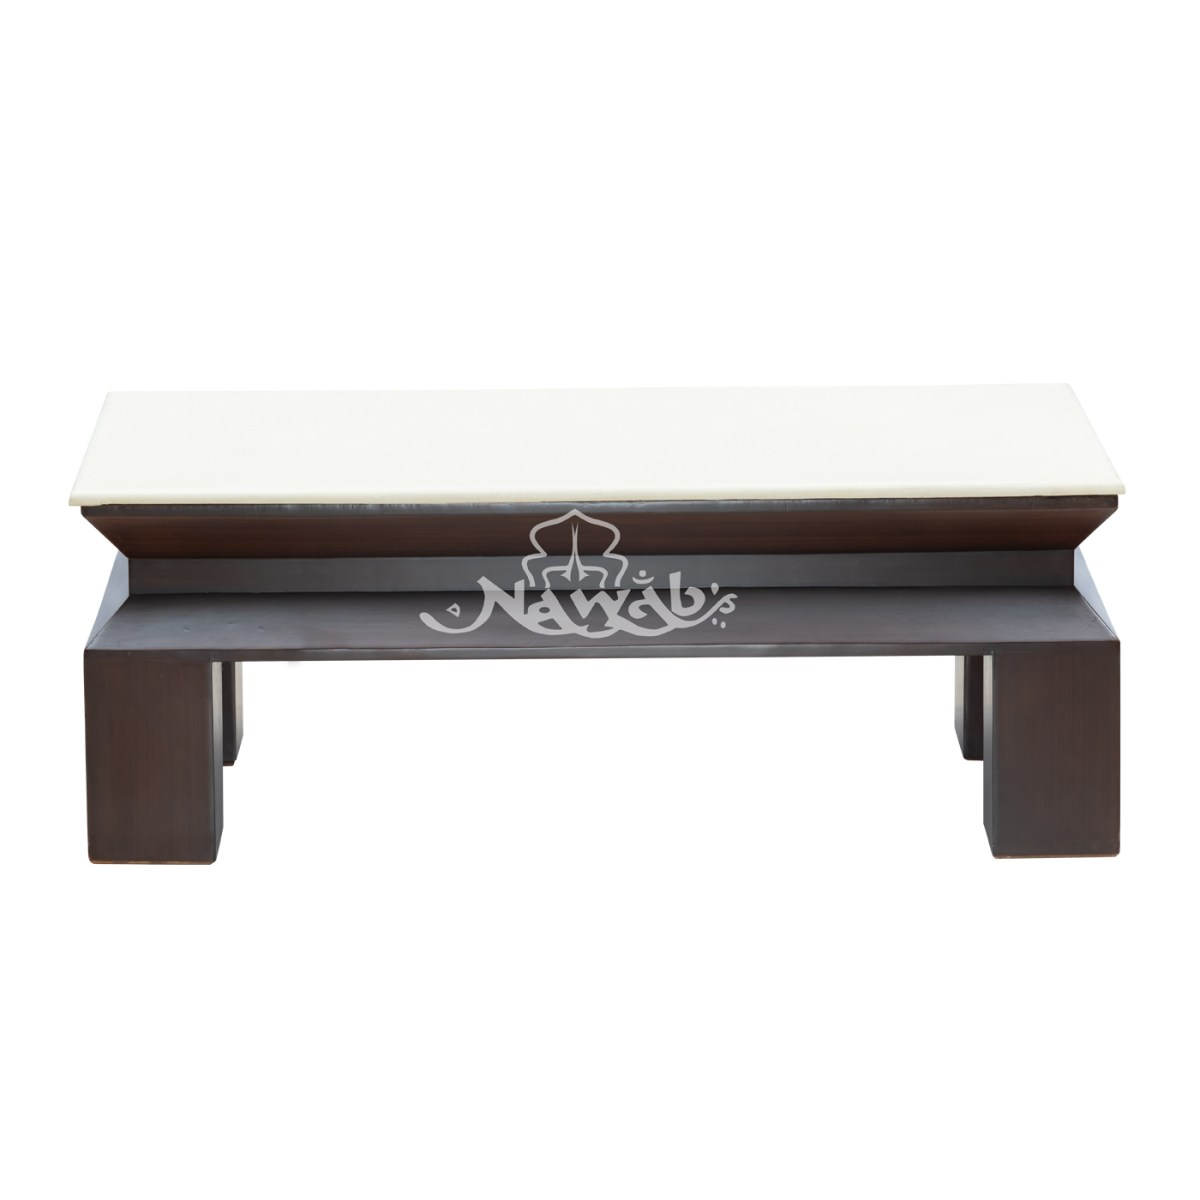 upholstered sofa cofe table